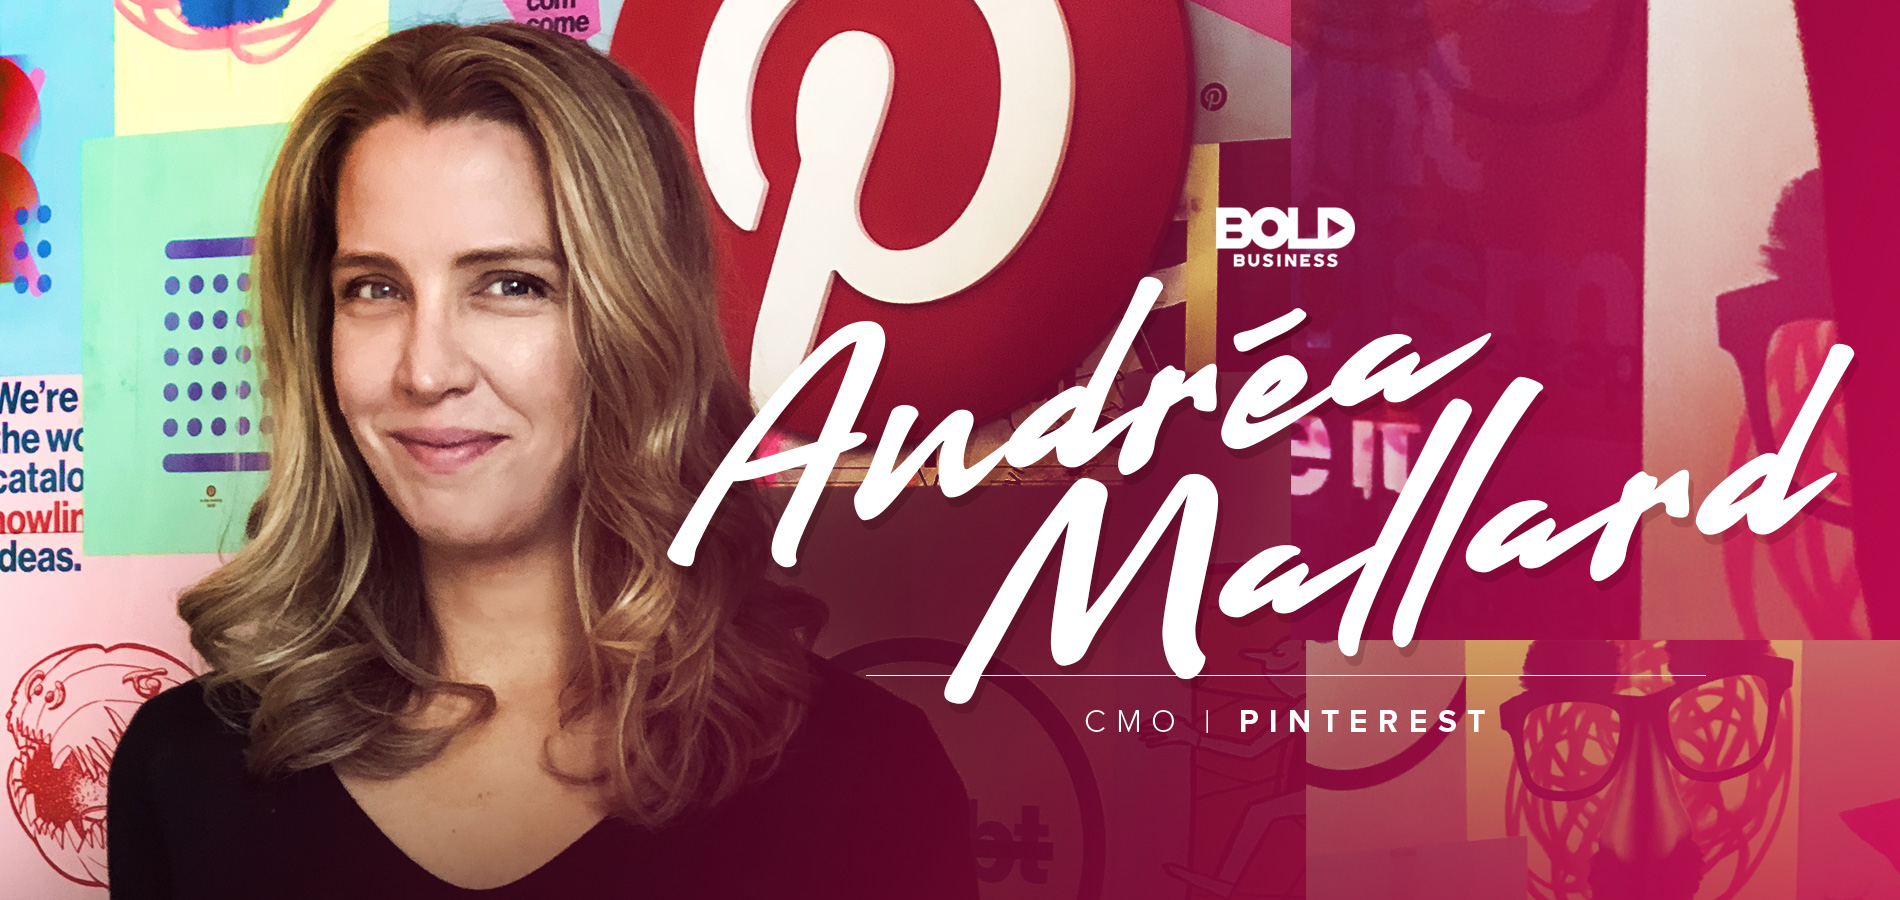 Pinterest's Andrea Mallard is a bold leader.